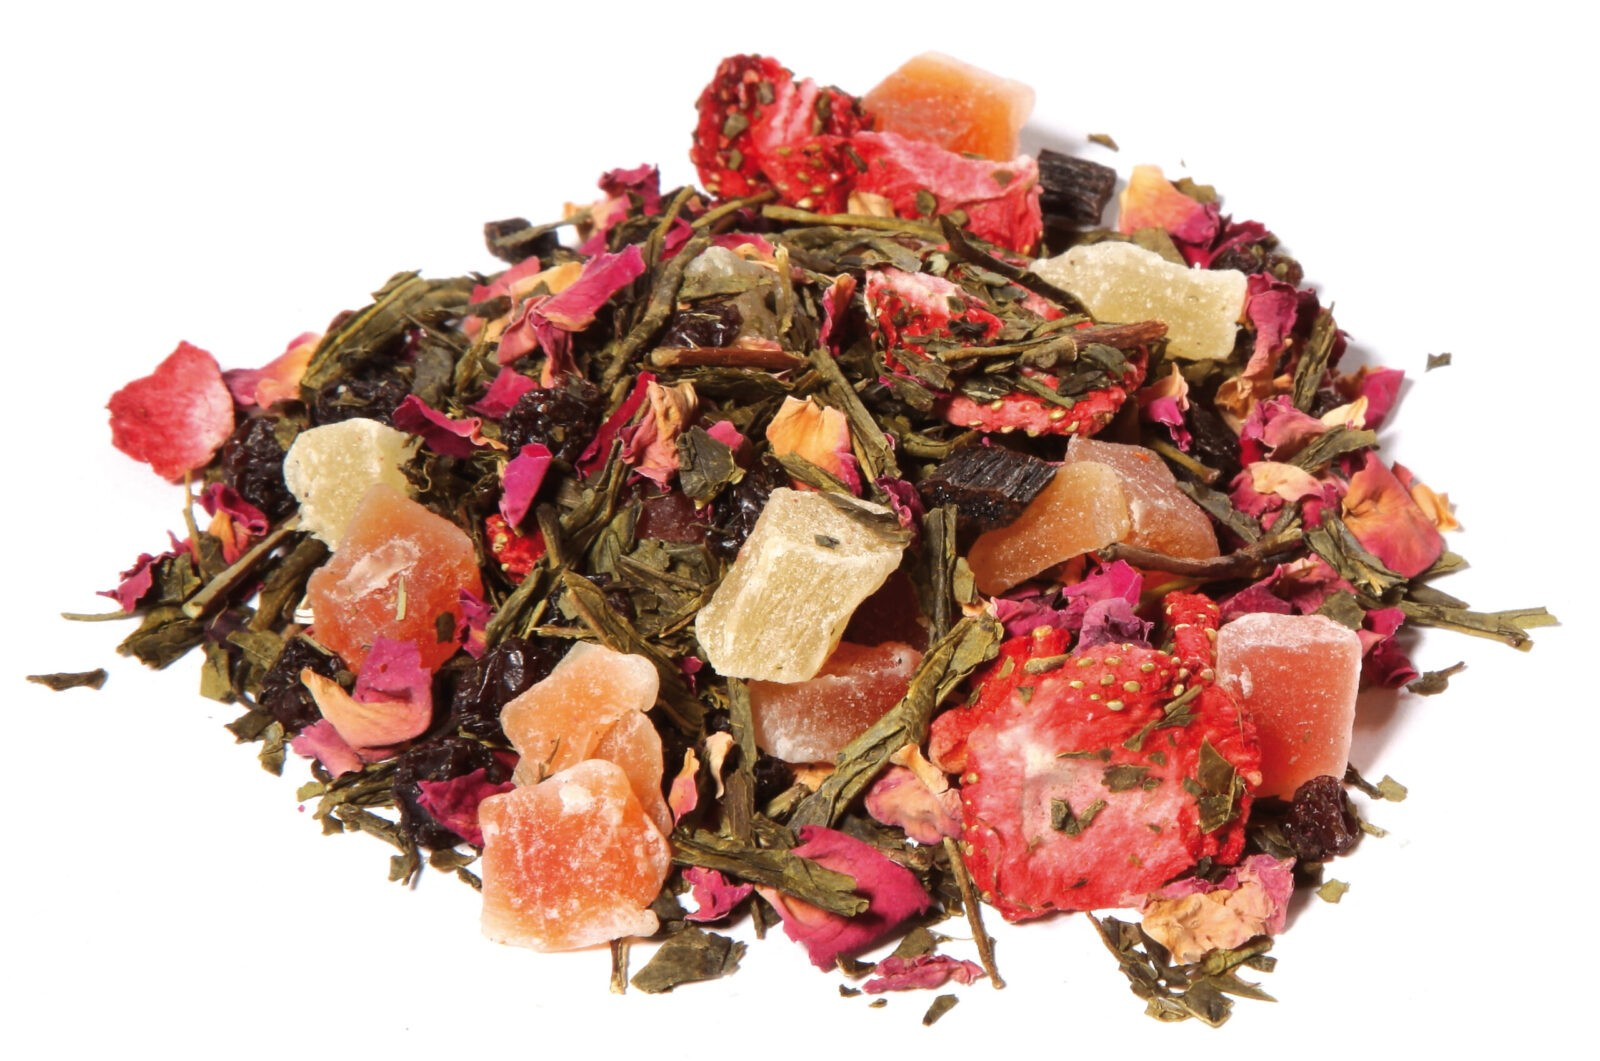 Green Tea Fruit Herbal Blend Cherry Raspberry Taste Freedom All Natural